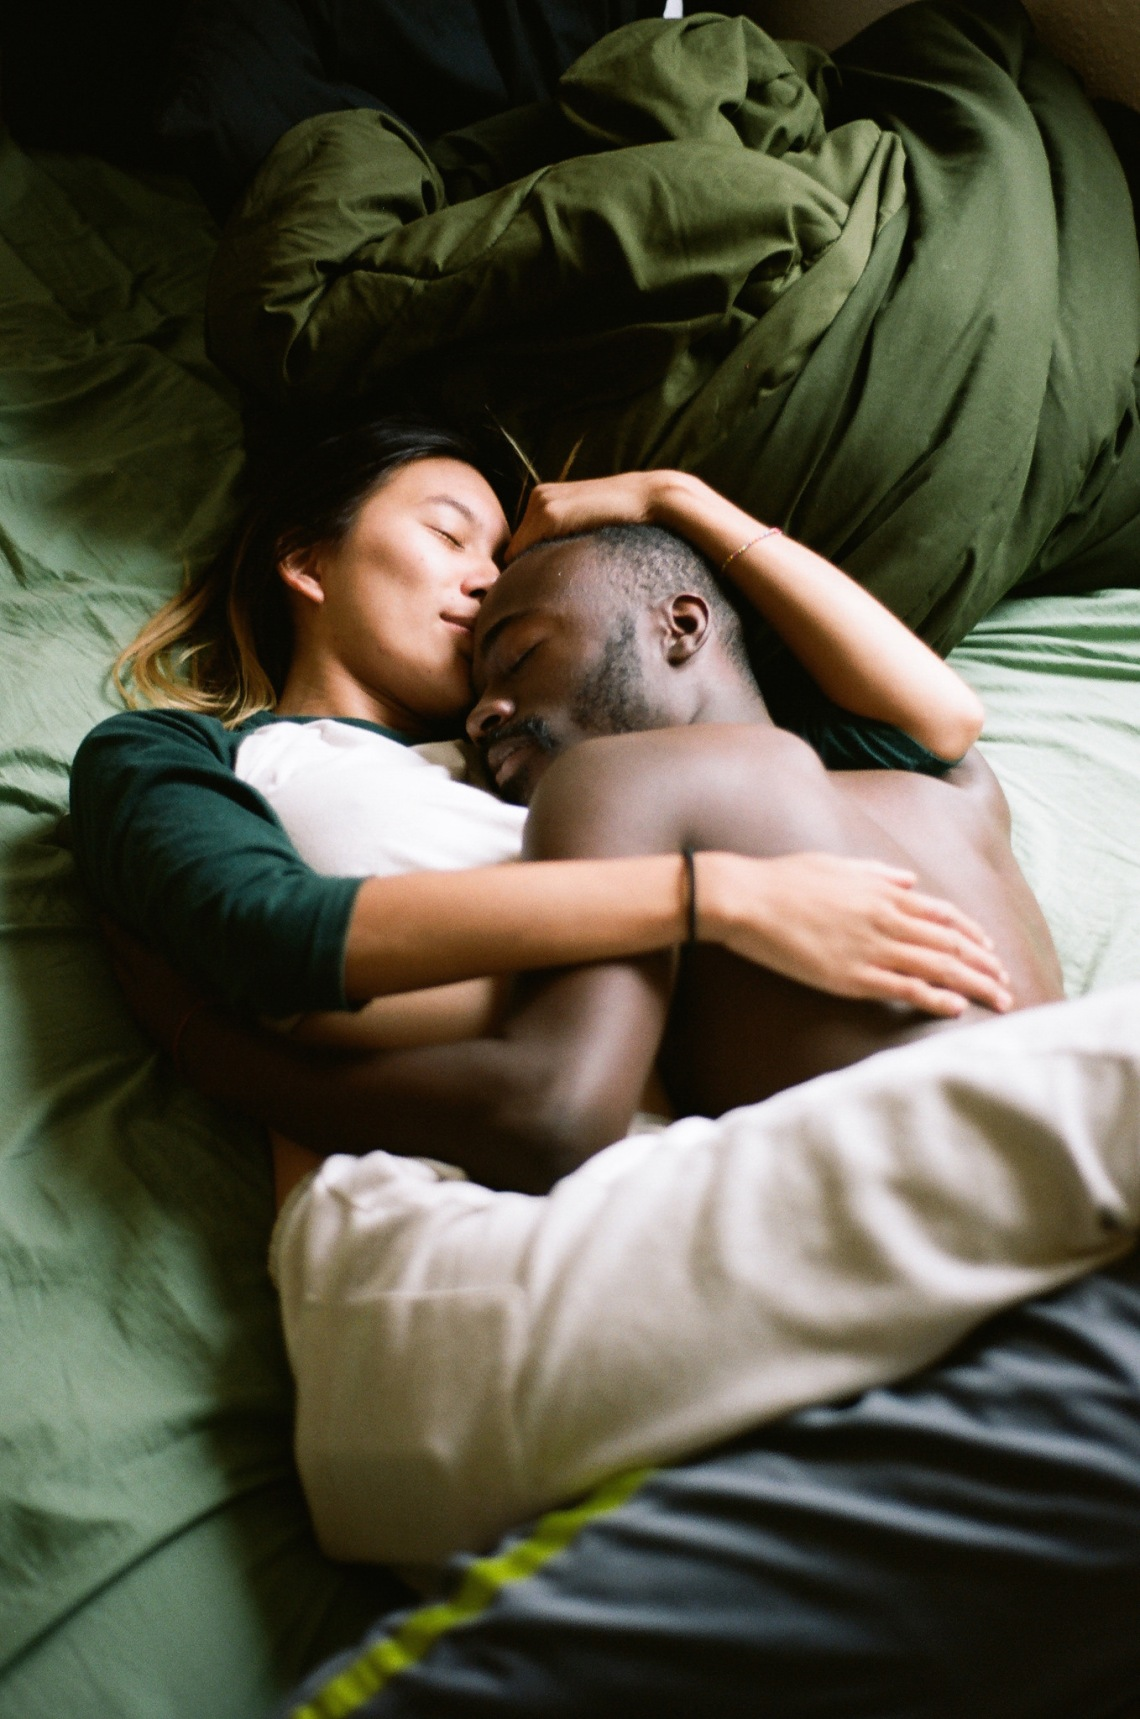 Man and woman embracing, intimate in bed, in love, comforting, cradling, taking care of each other